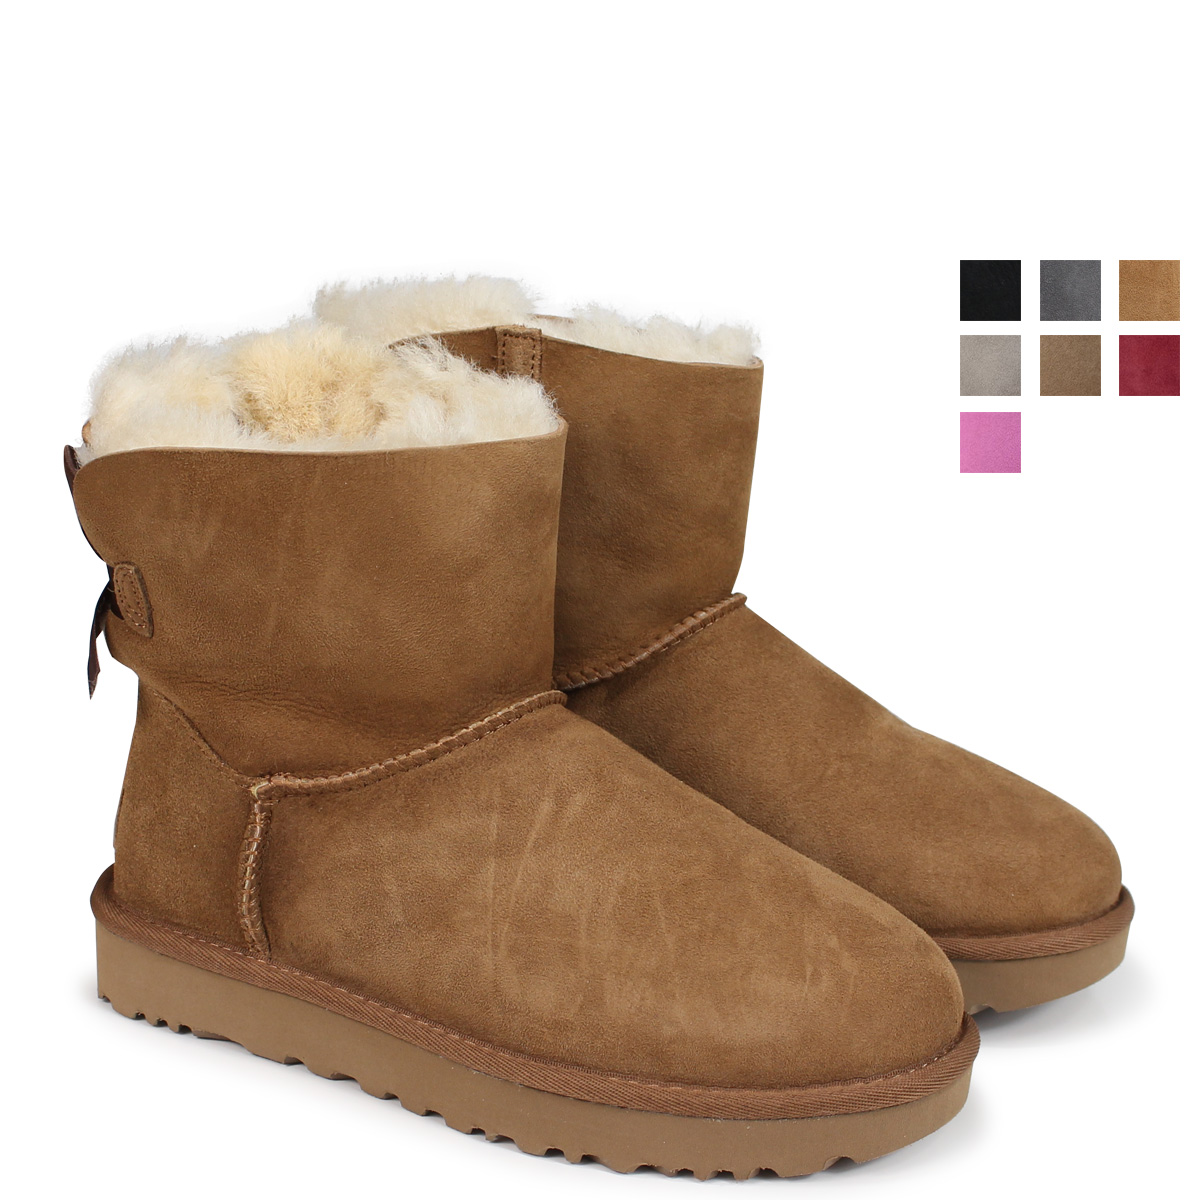 a582178f278 UGG MINI BAILEY BOW アグムートンブーツミニベイリーボウ 2 1016501 Lady's